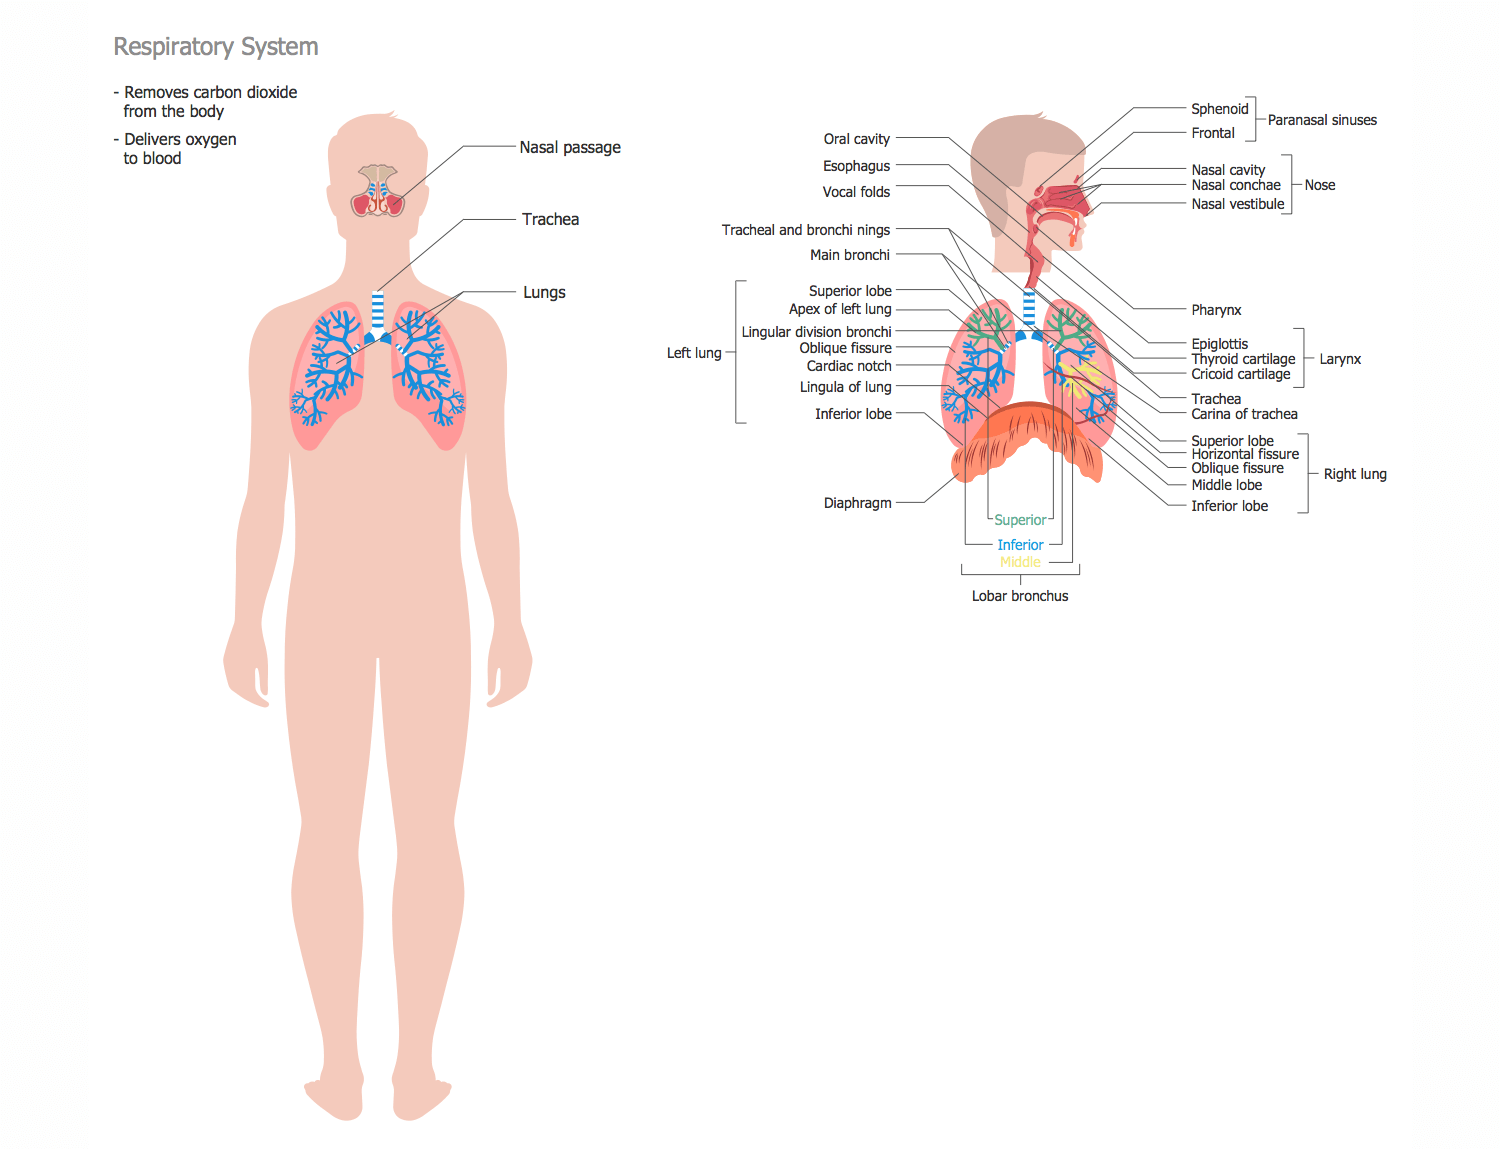 Dorable Carina Lung Anatomy Composition - Physiology Of Human Body ...